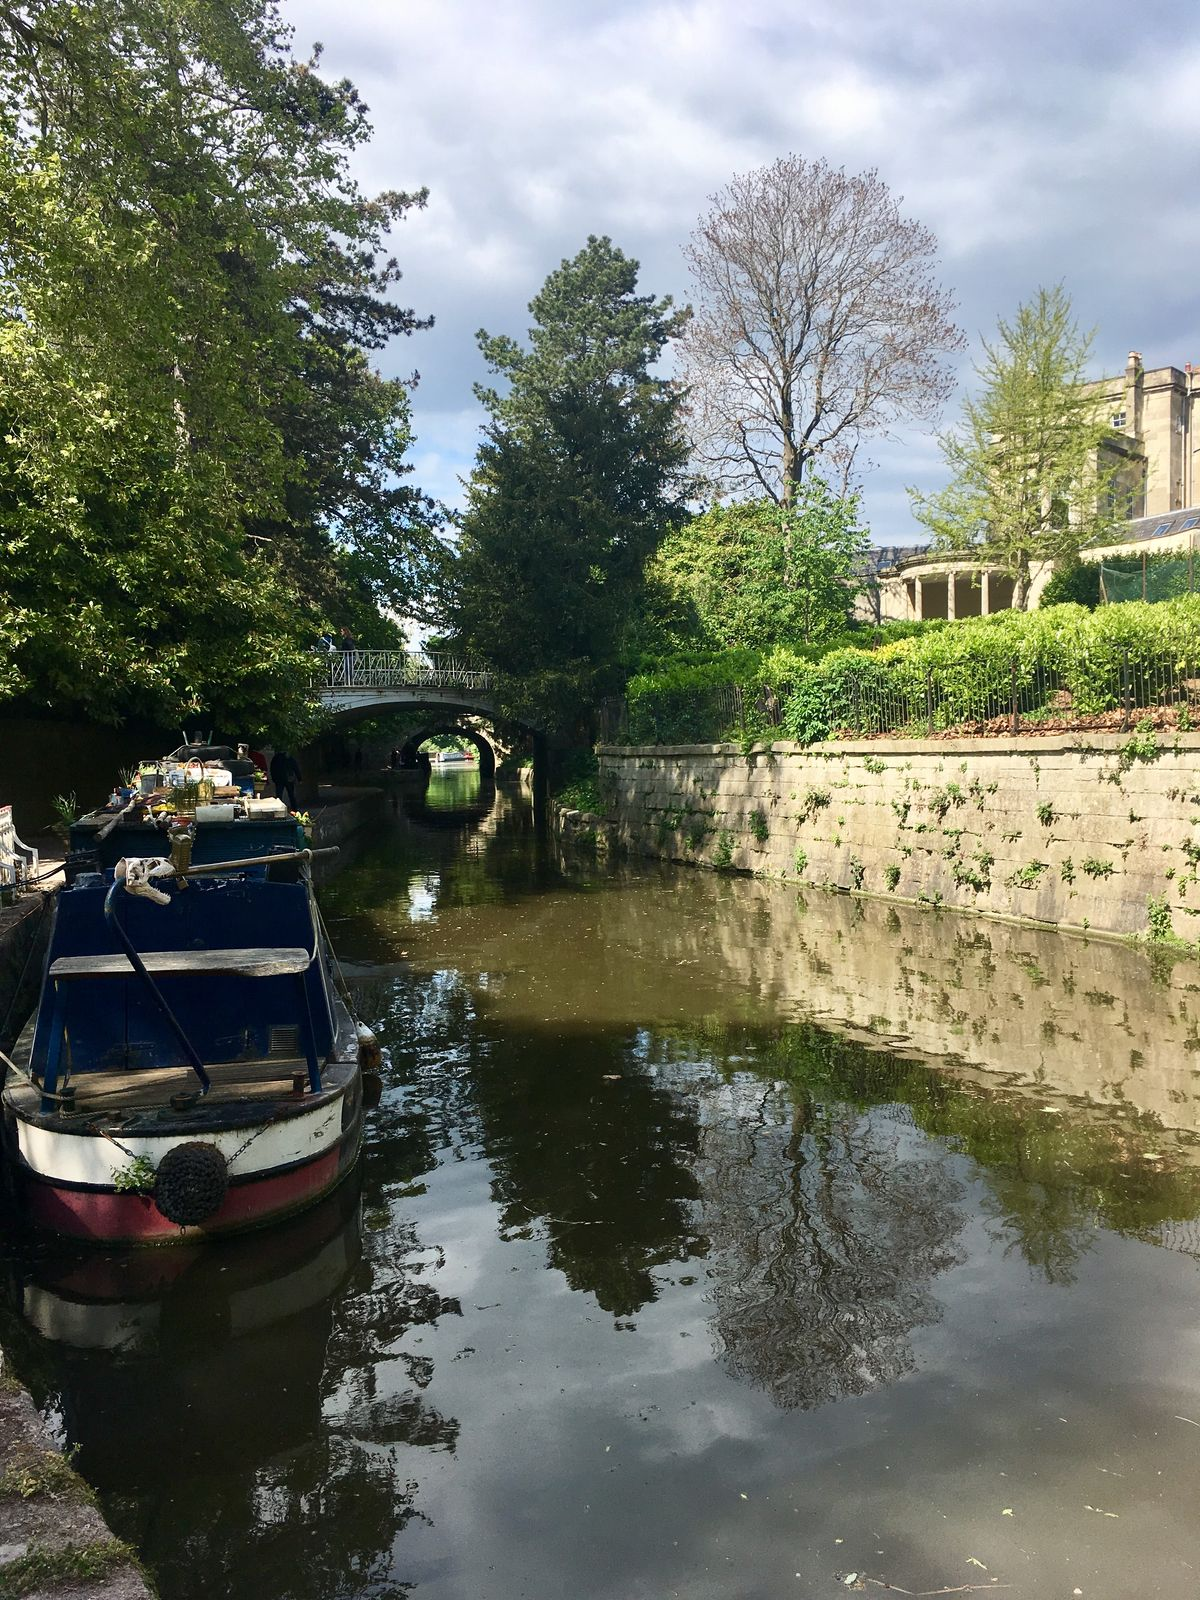 Beginner's Guide To Bath: Free Time